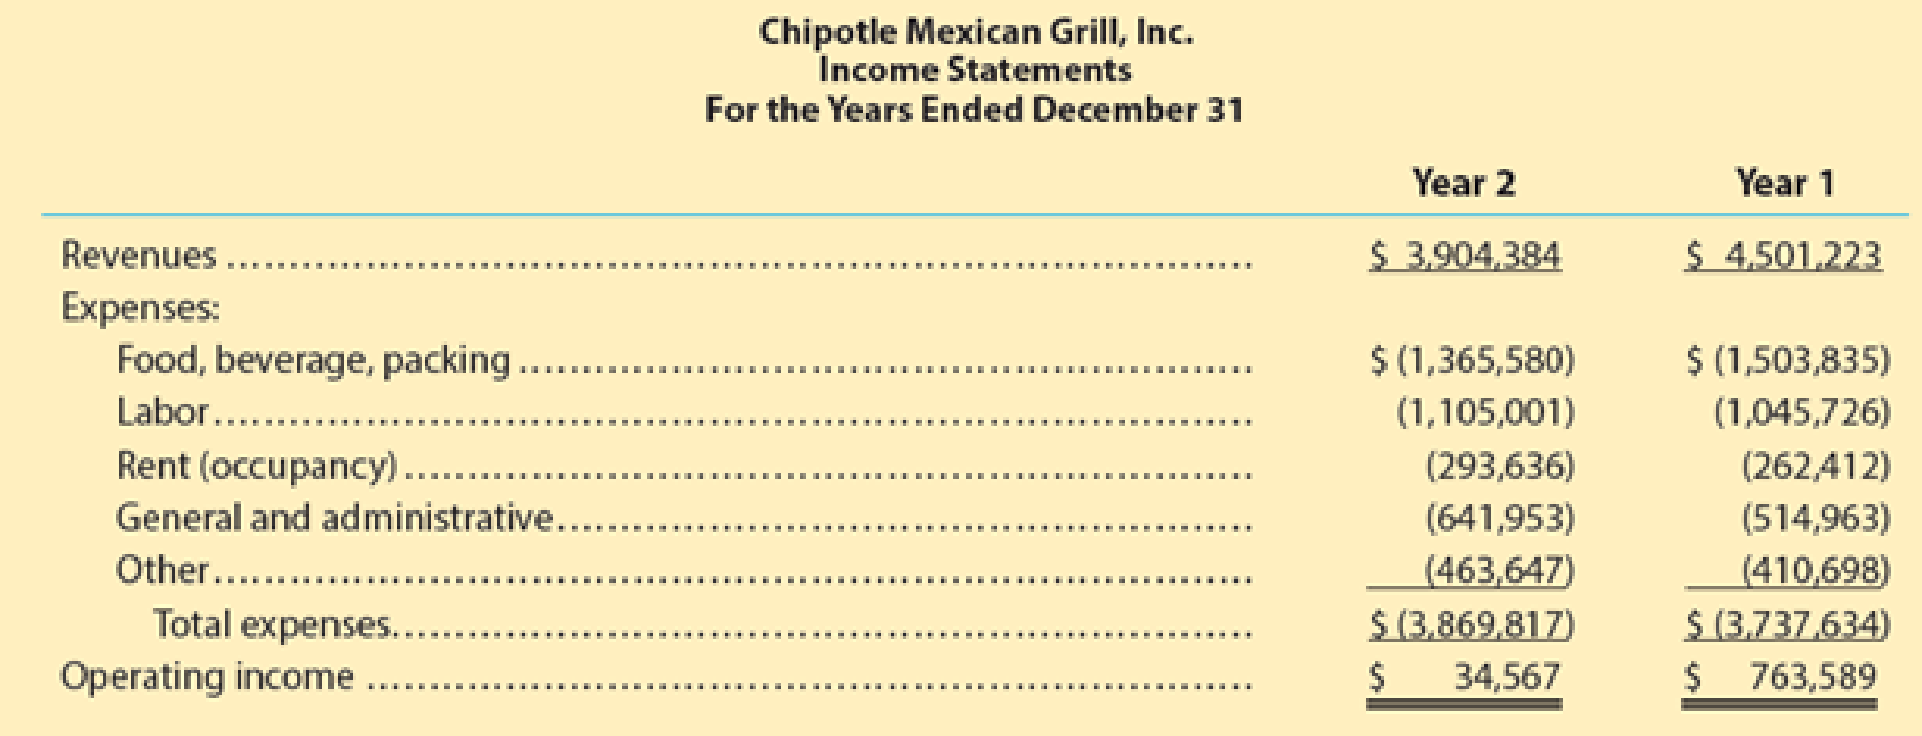 Chapter 3, Problem 4MAD, Analyze Chipotle Mexican Grill Chipotle Mexican Grill, Inc. (CMG) is a quick-service restaurant